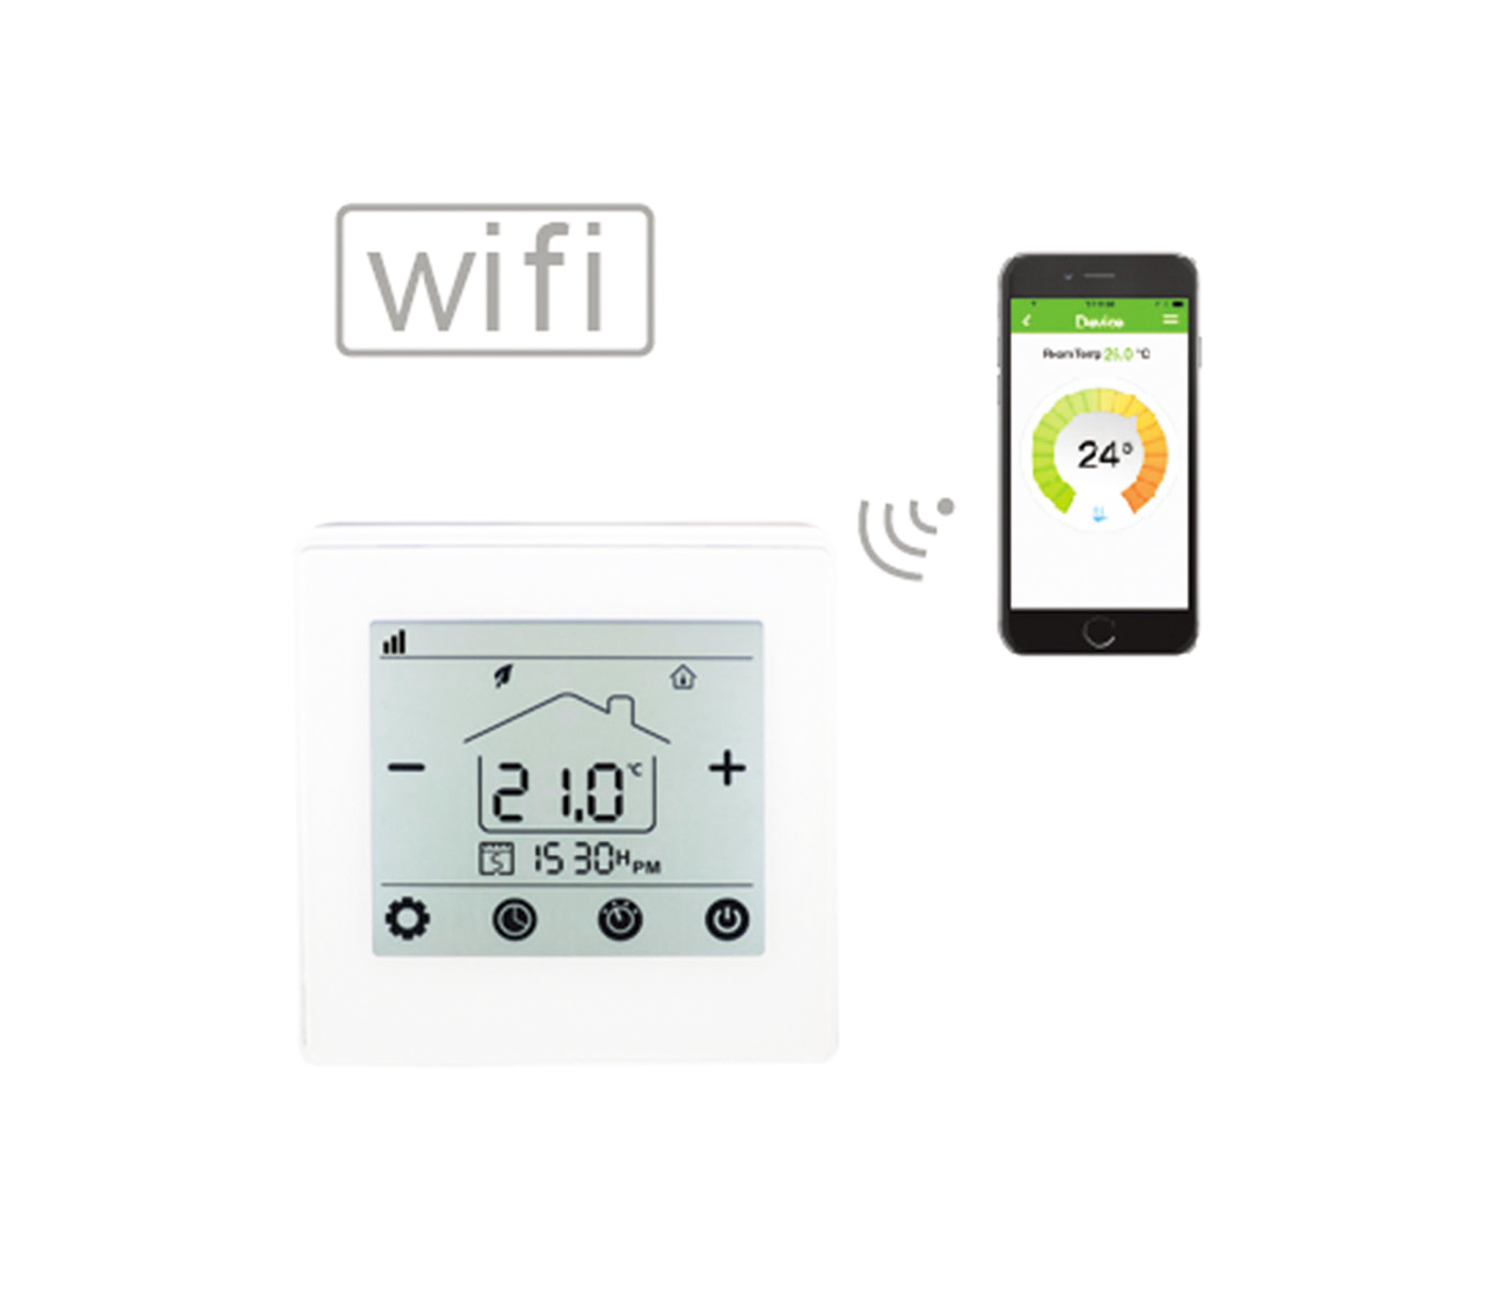 Suntask_HT_09W_Wifi_Thermostat_front2.jpg